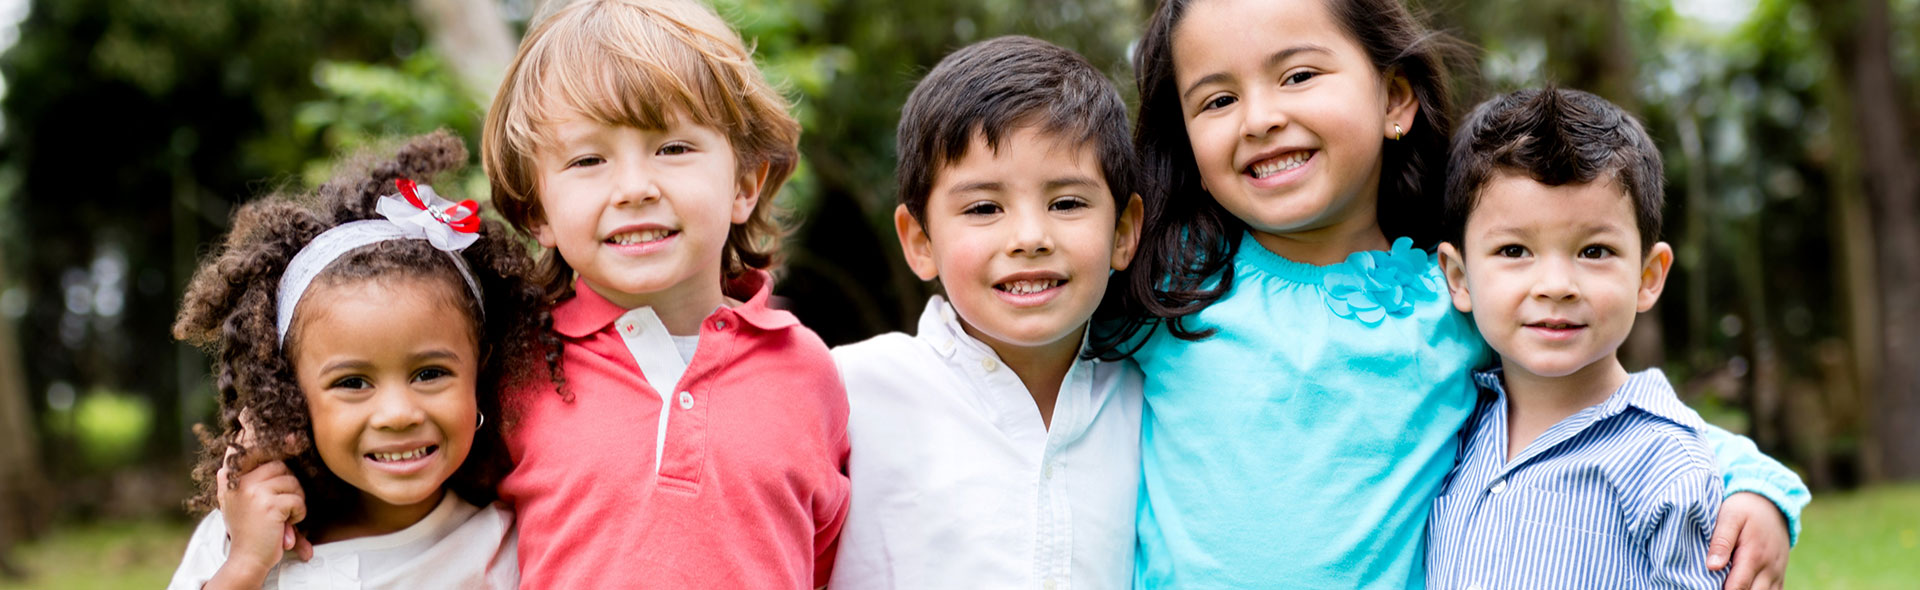 Happy Kids - Pediatric Dentist in Hales Corners, WI